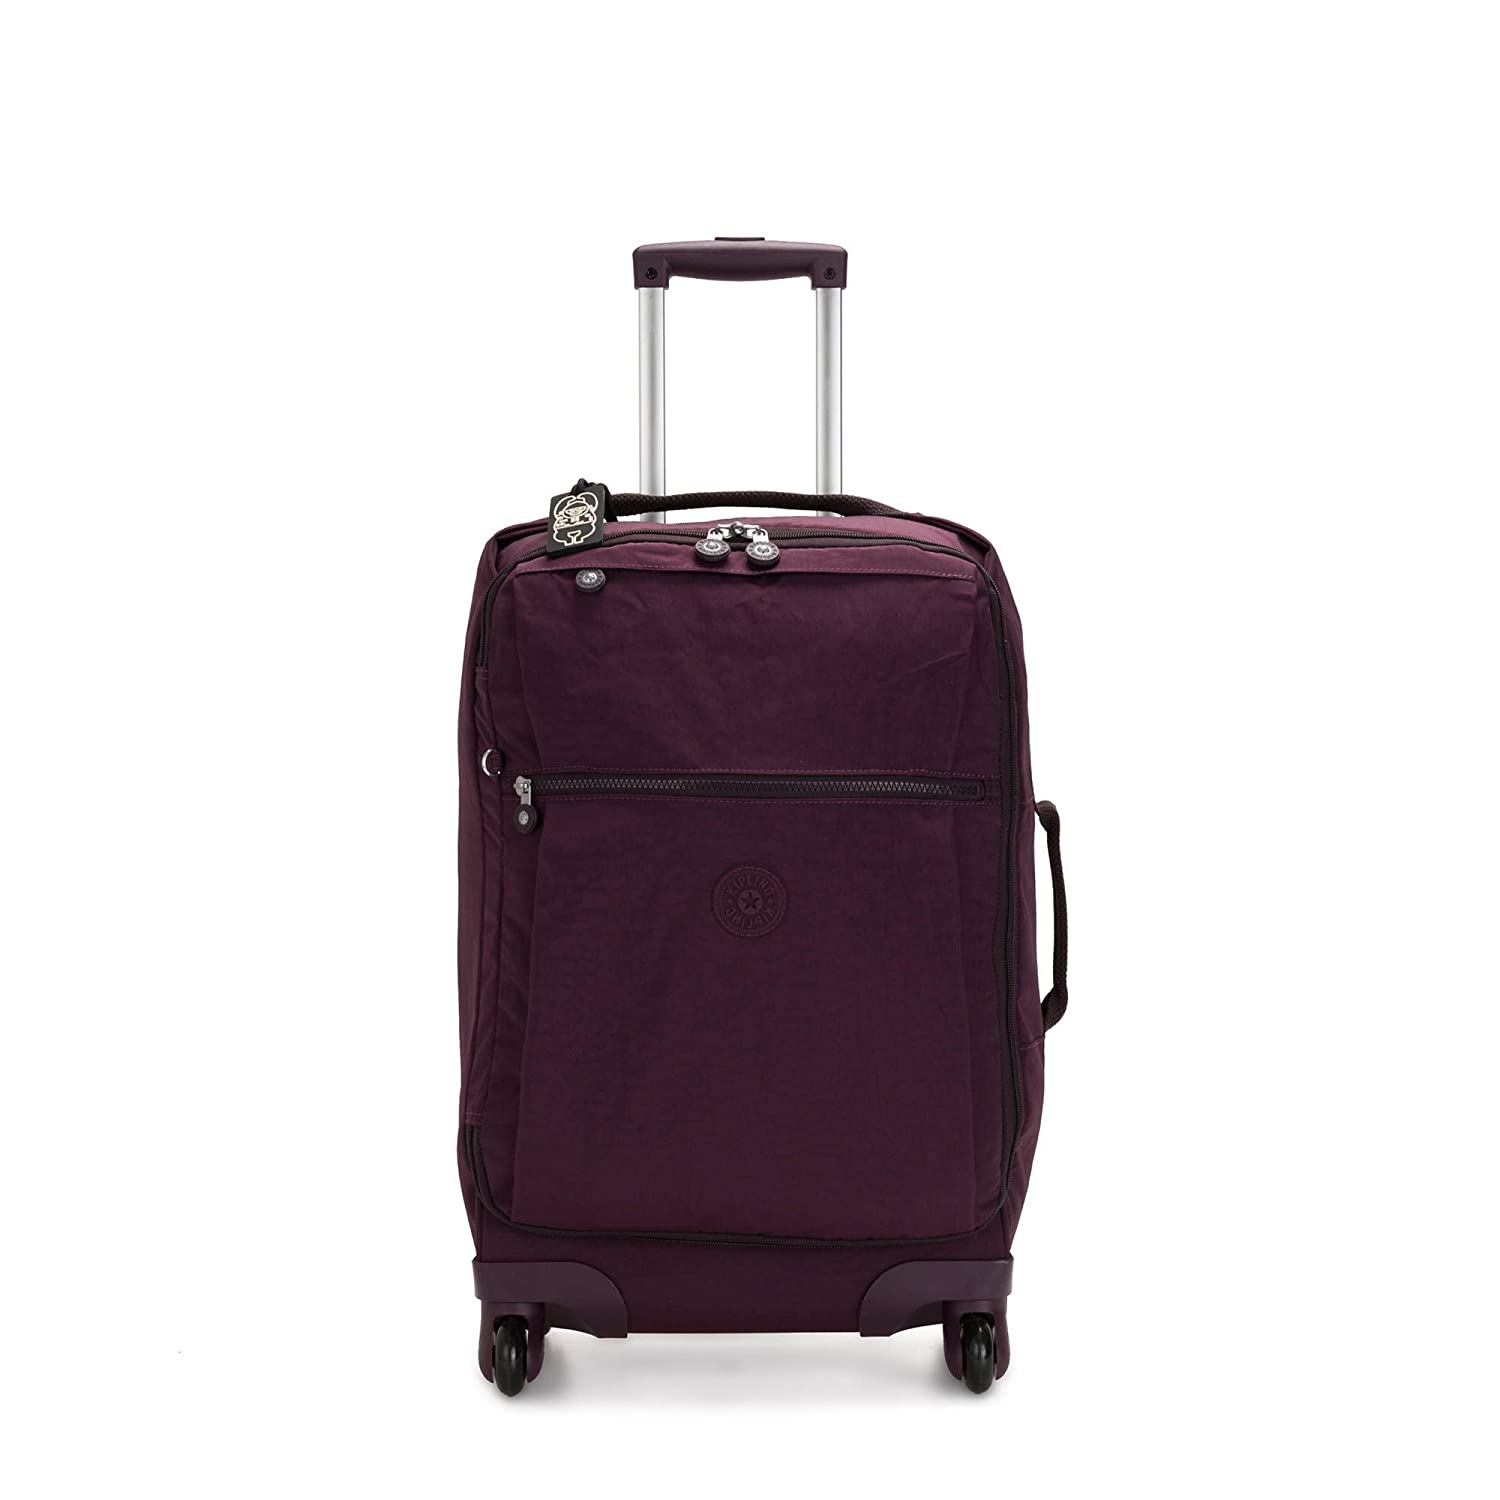 Kipling Women s Darcey Small Carry-On Rolling Luggage